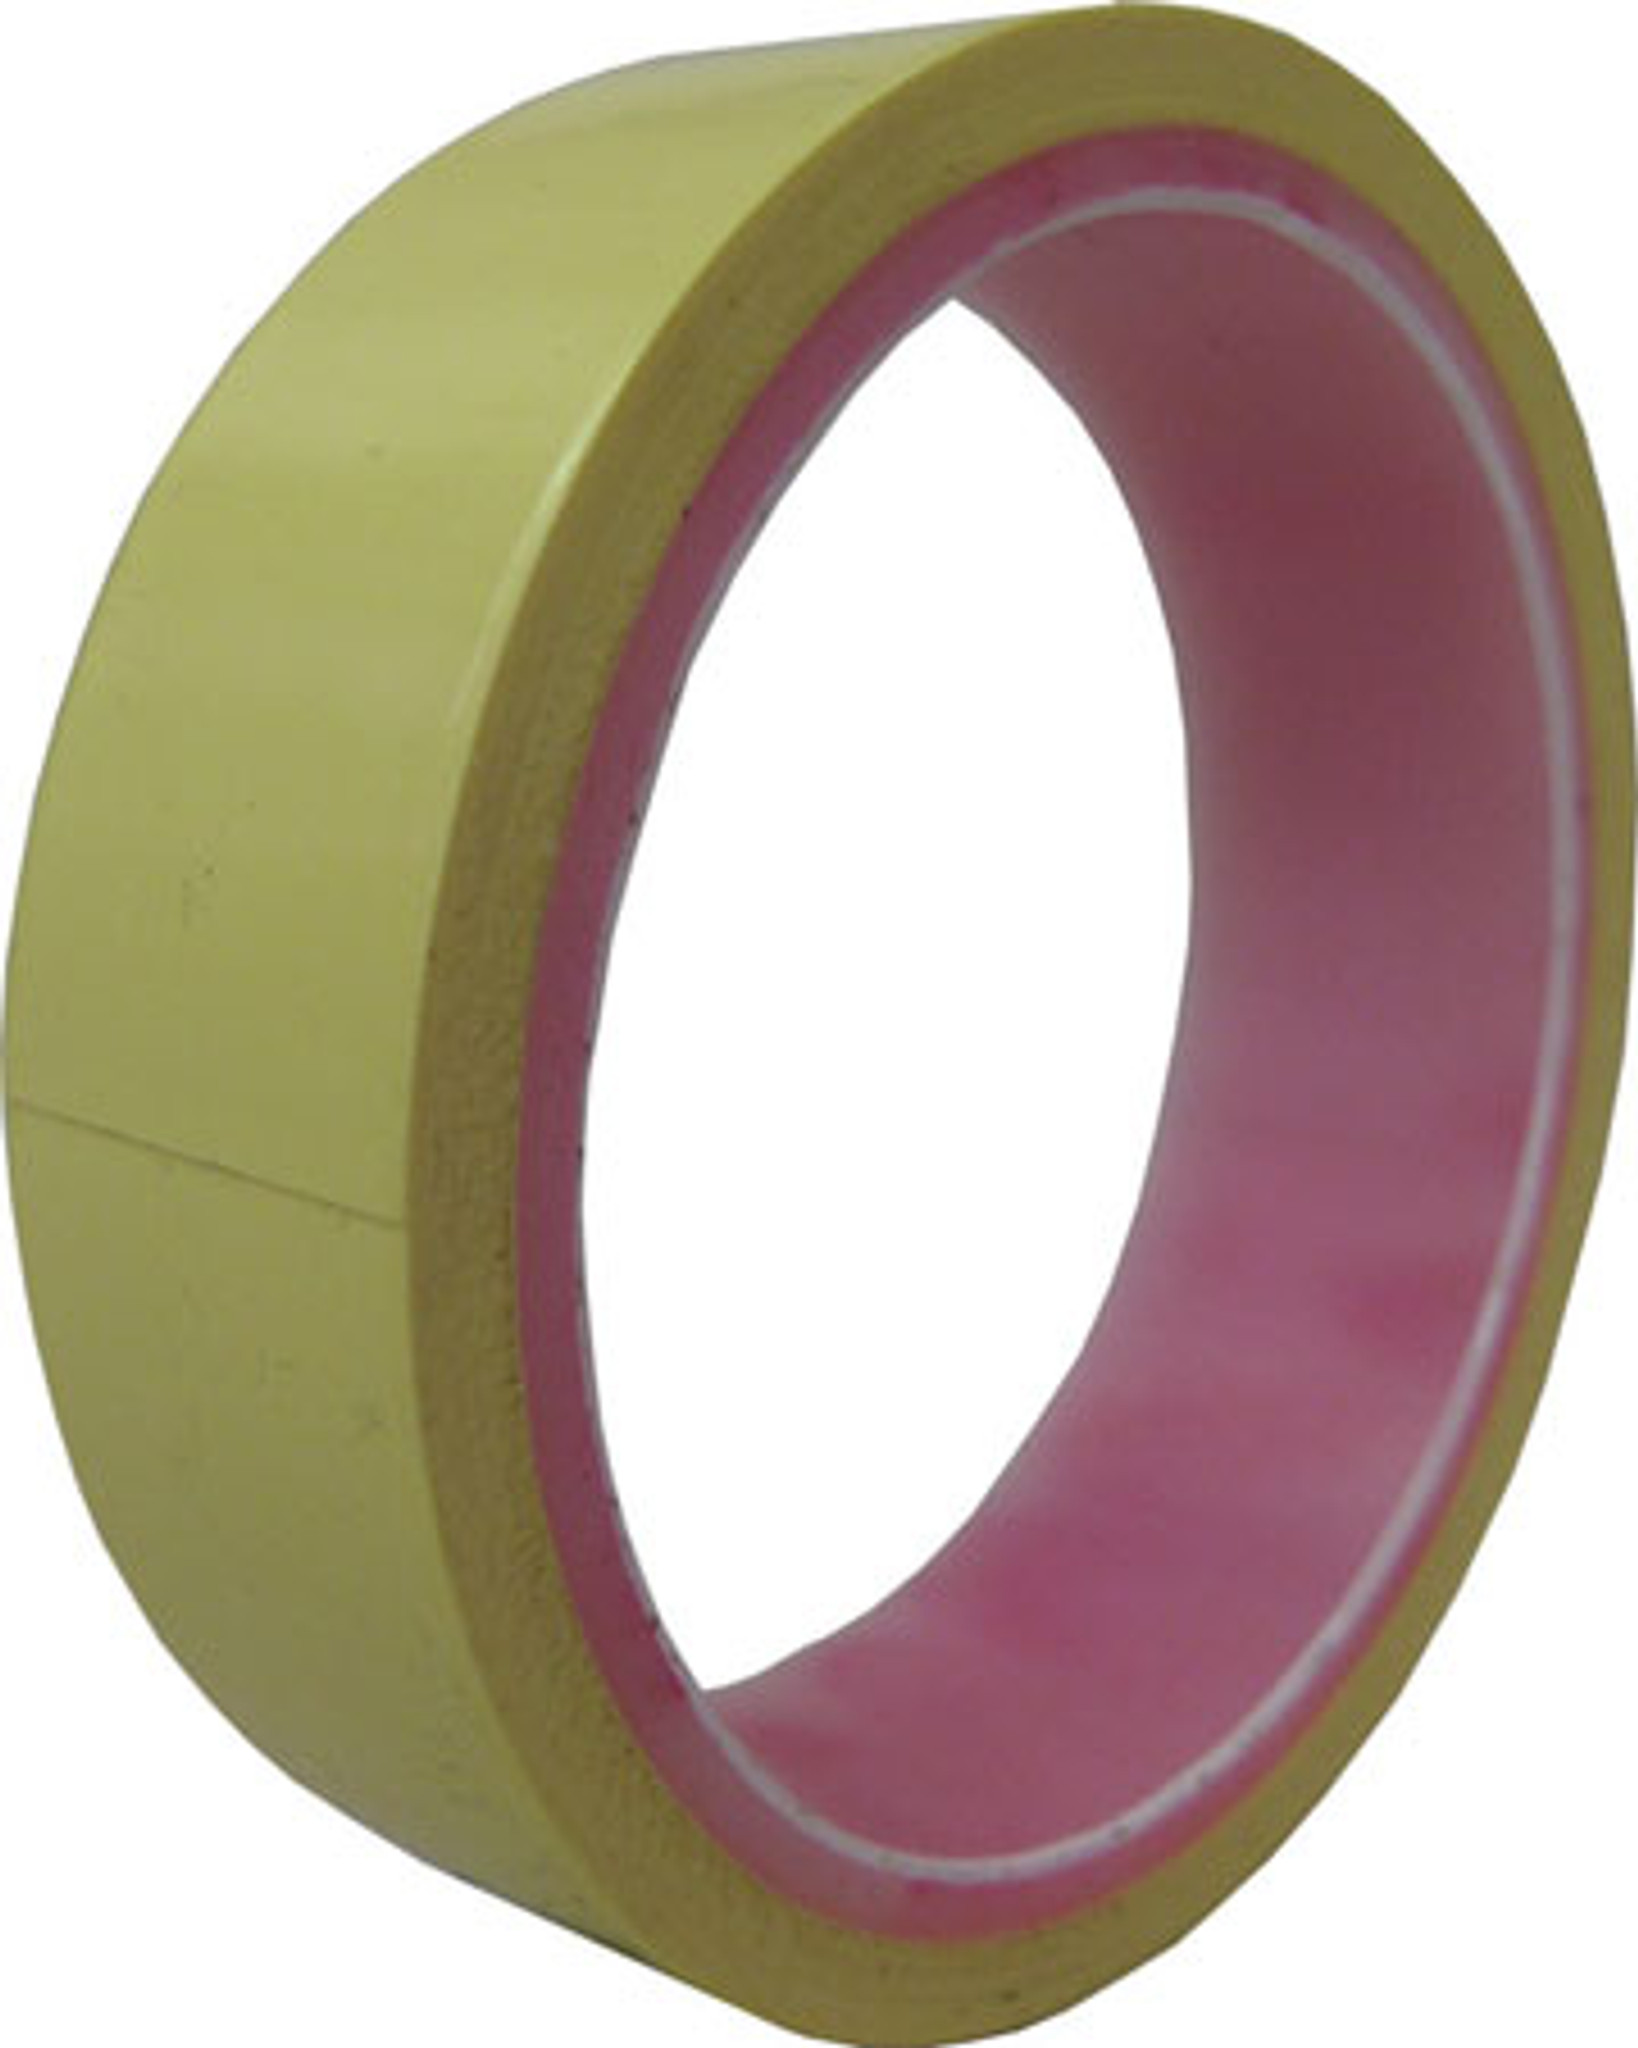 Rim Tape Stan/'s No Tubes Yellow 21mm x 9.14m Roll